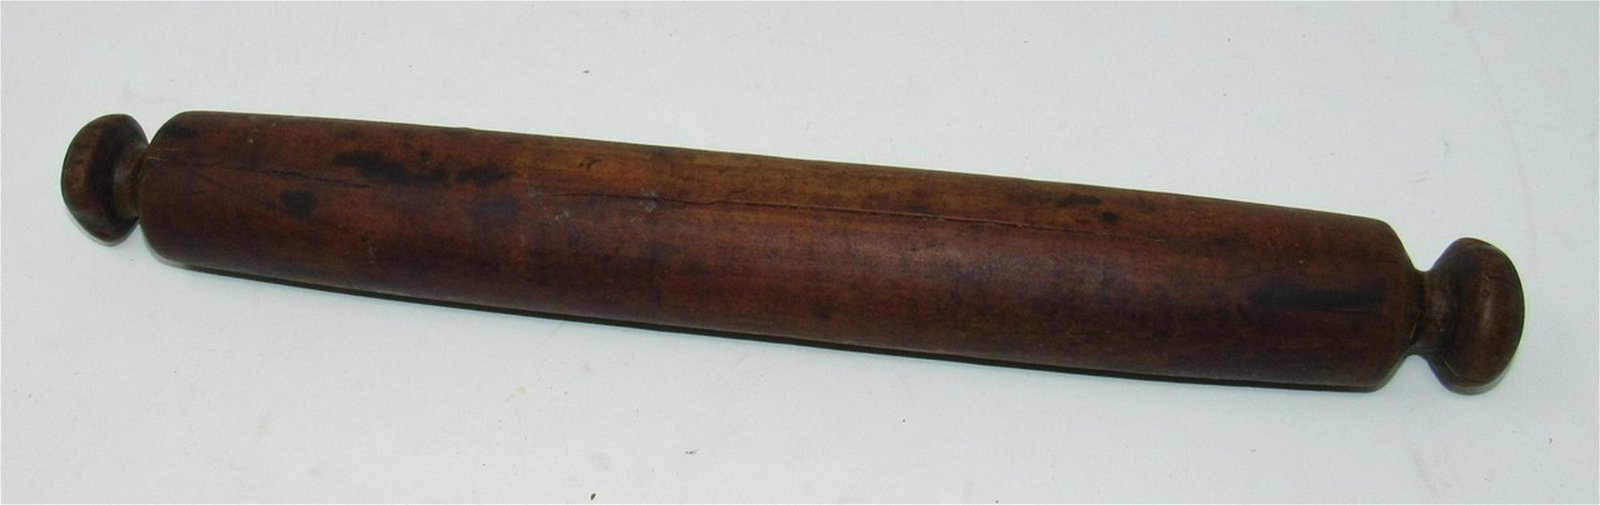 Early Wooden Rolling Pin